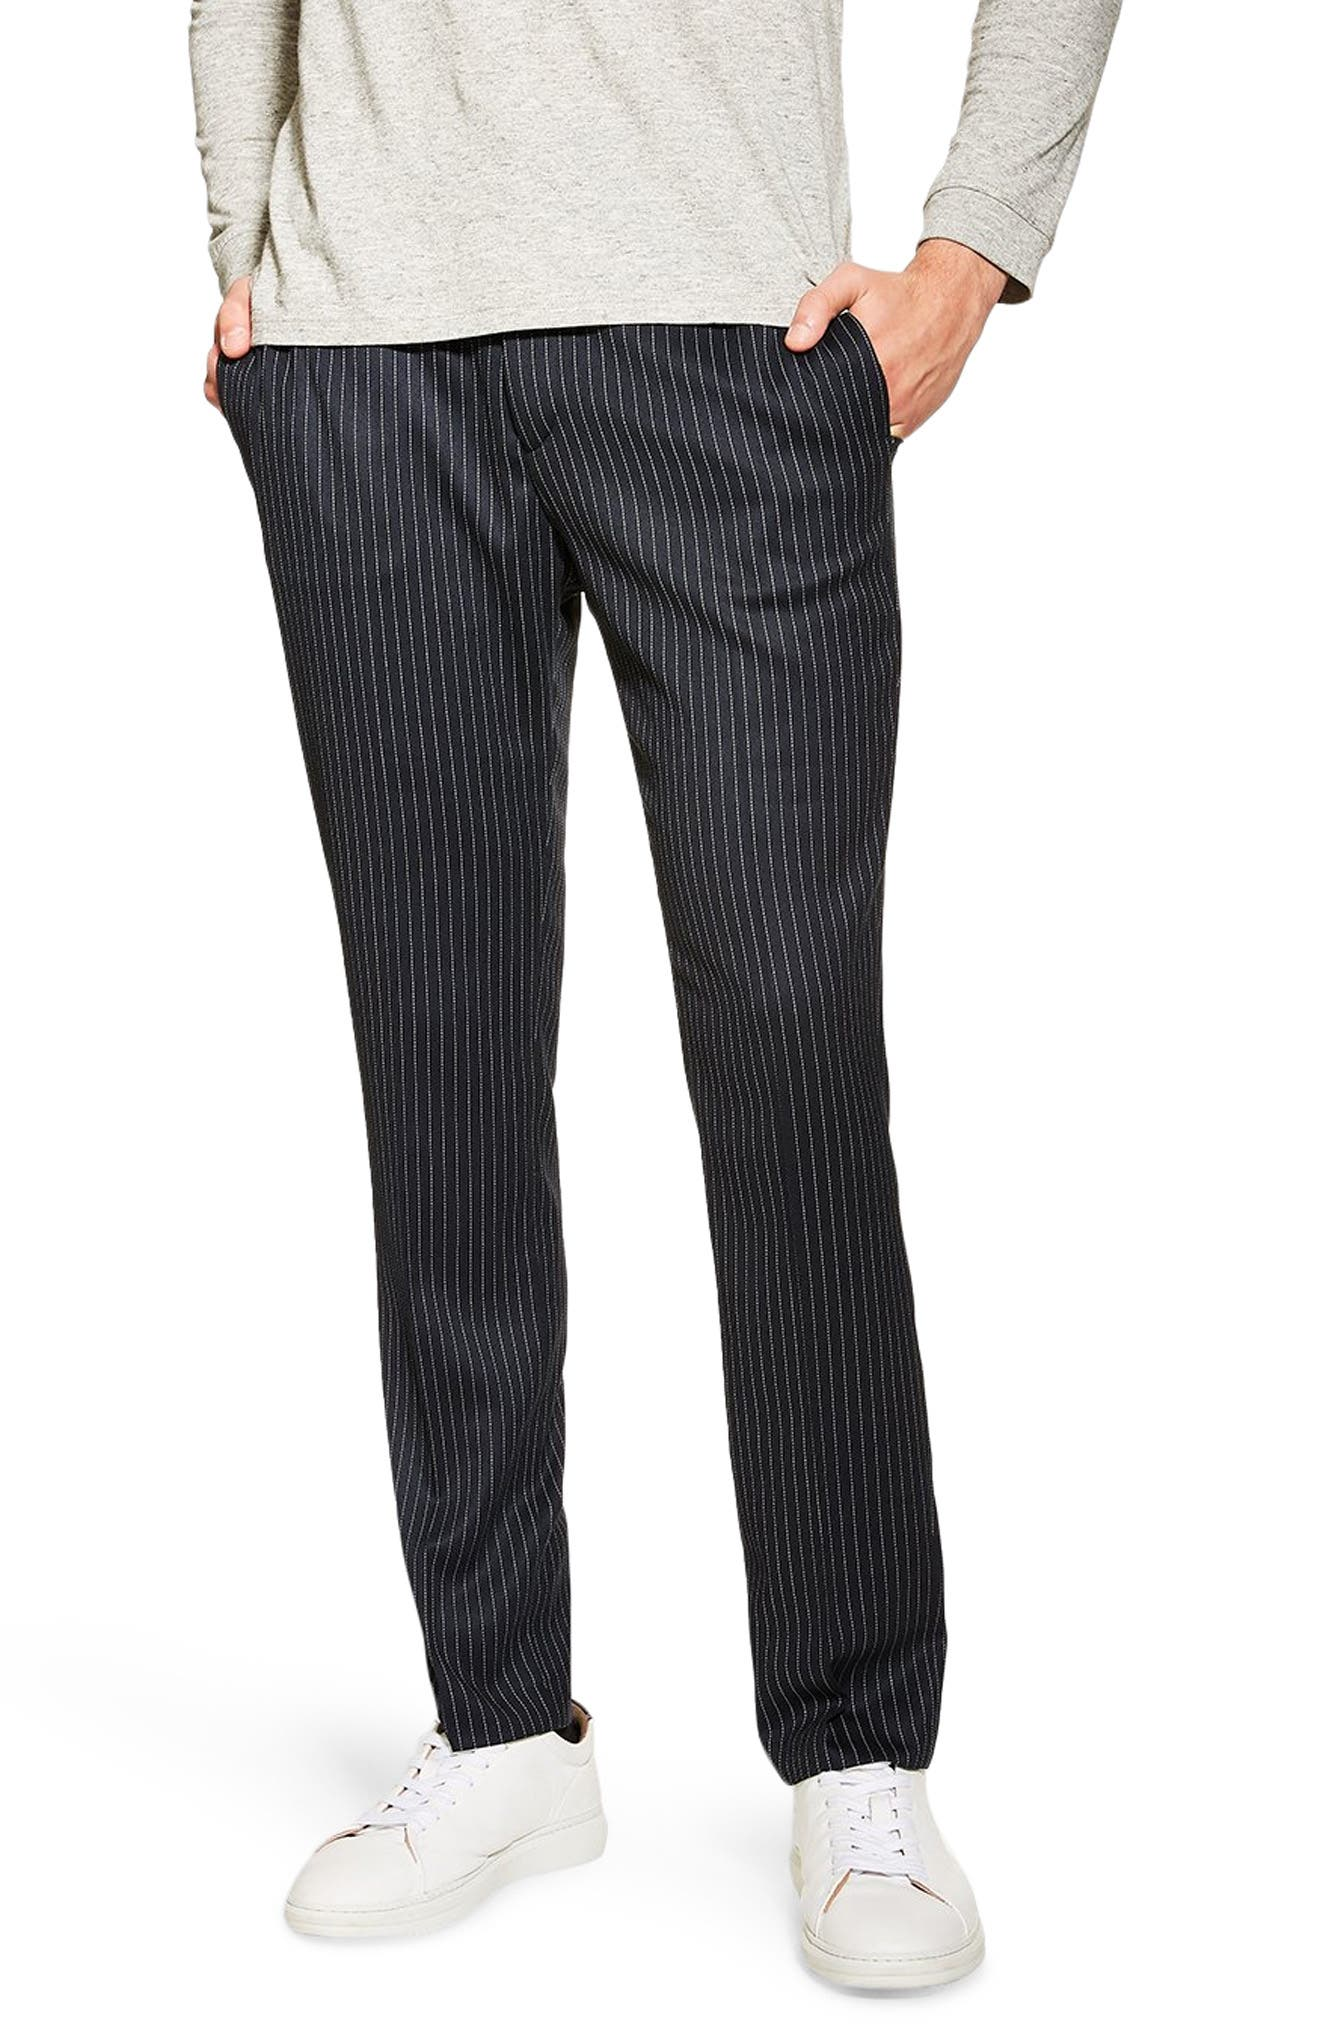 TOPMAN Tailored Pinstripe Trousers, Main, color, NAVY BLUE